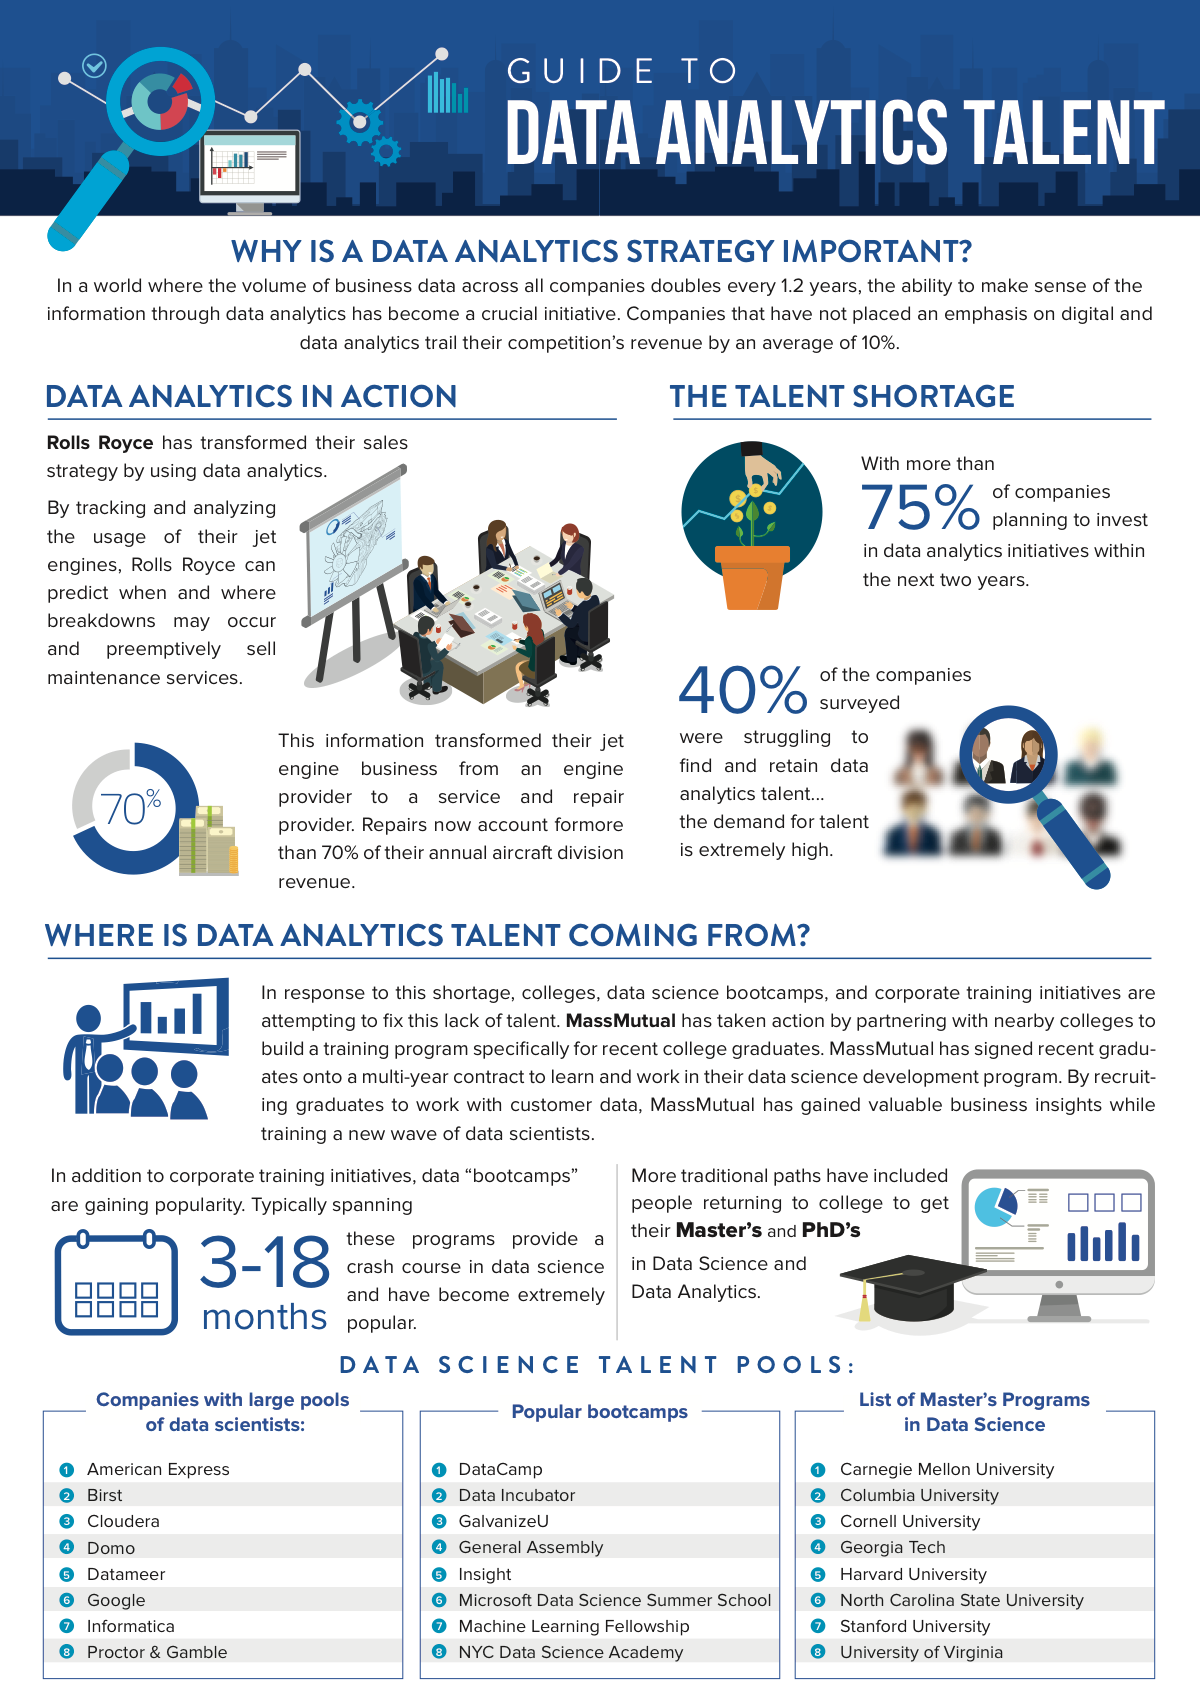 Ridgeway Partners' Guide to Data Analytics Talent Infographic